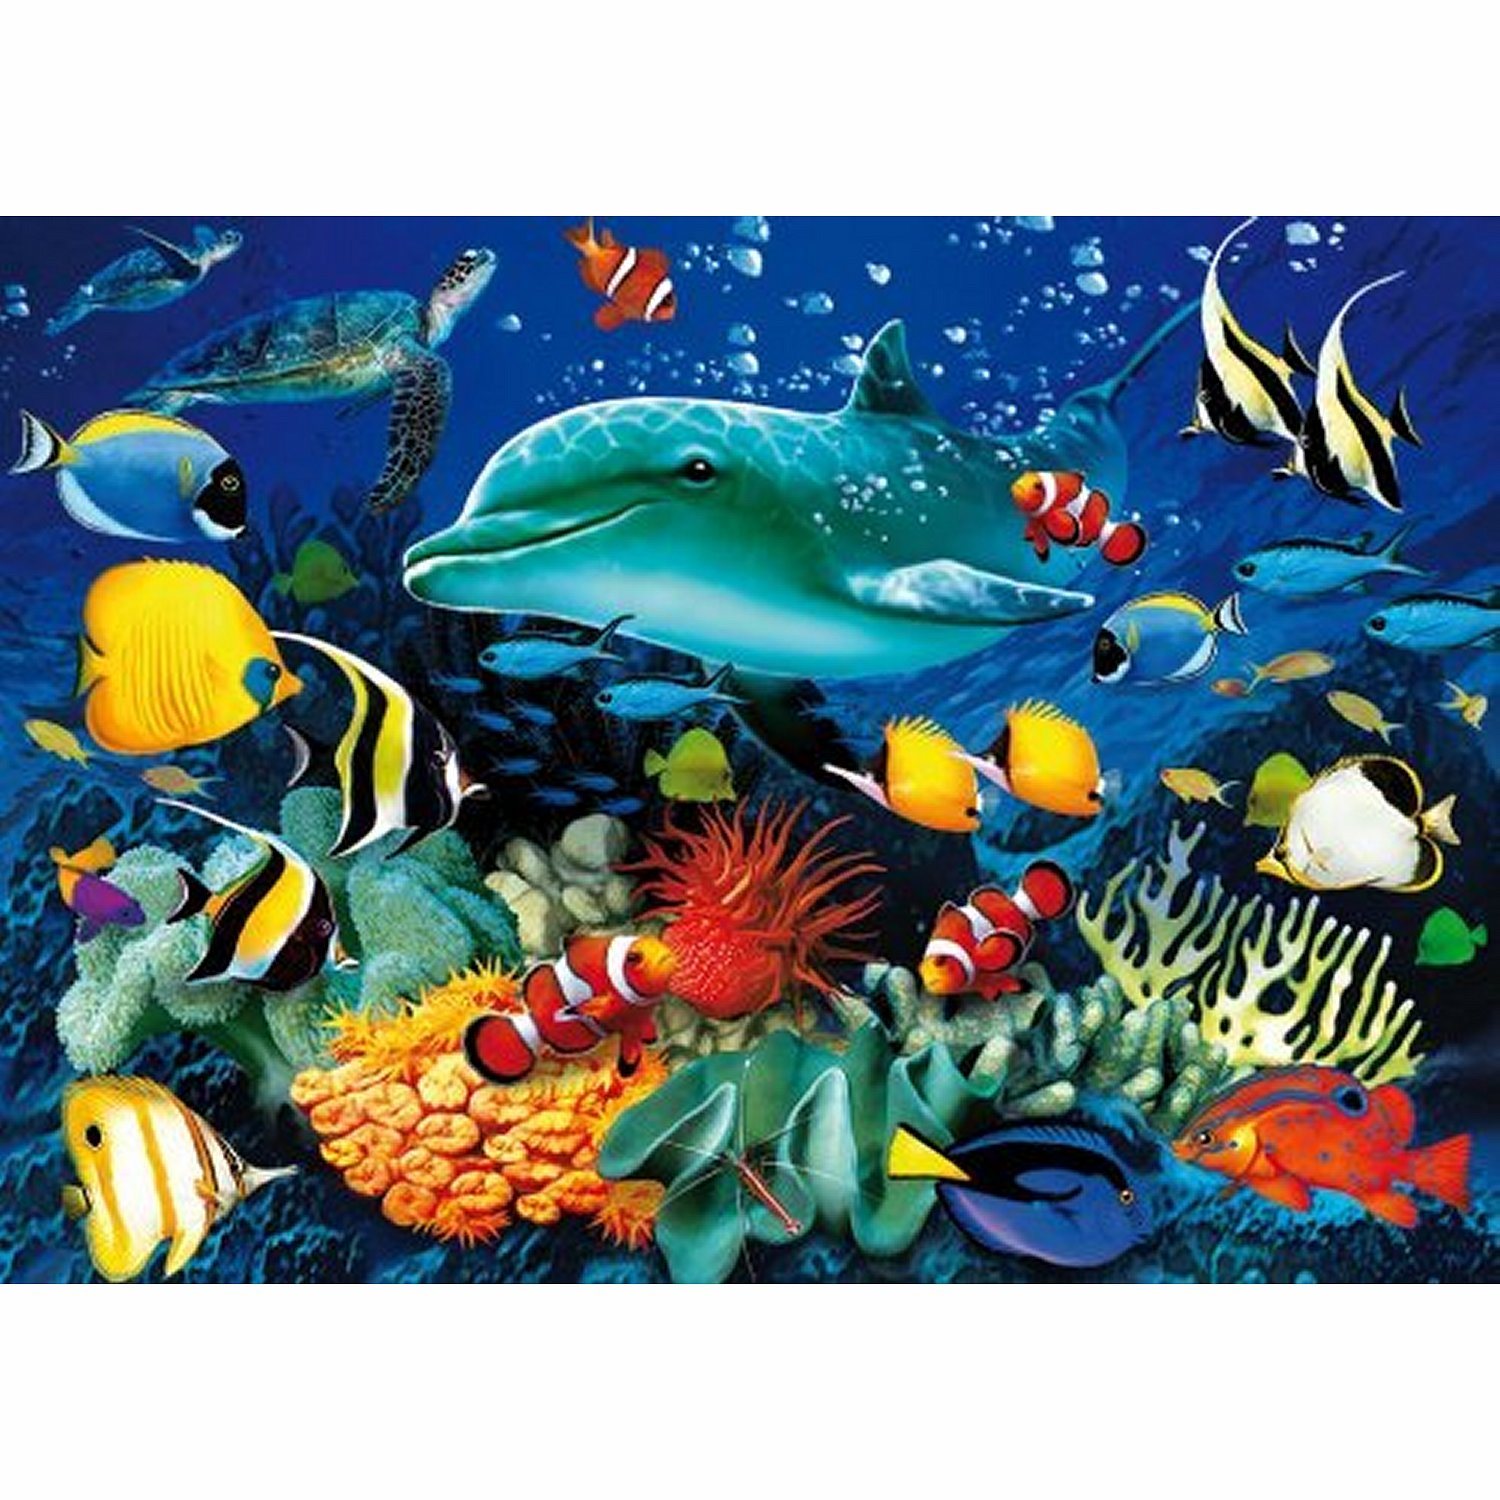 Jigsaw Puzzle - 1000 Pieces - 3D - Under Water Life ...